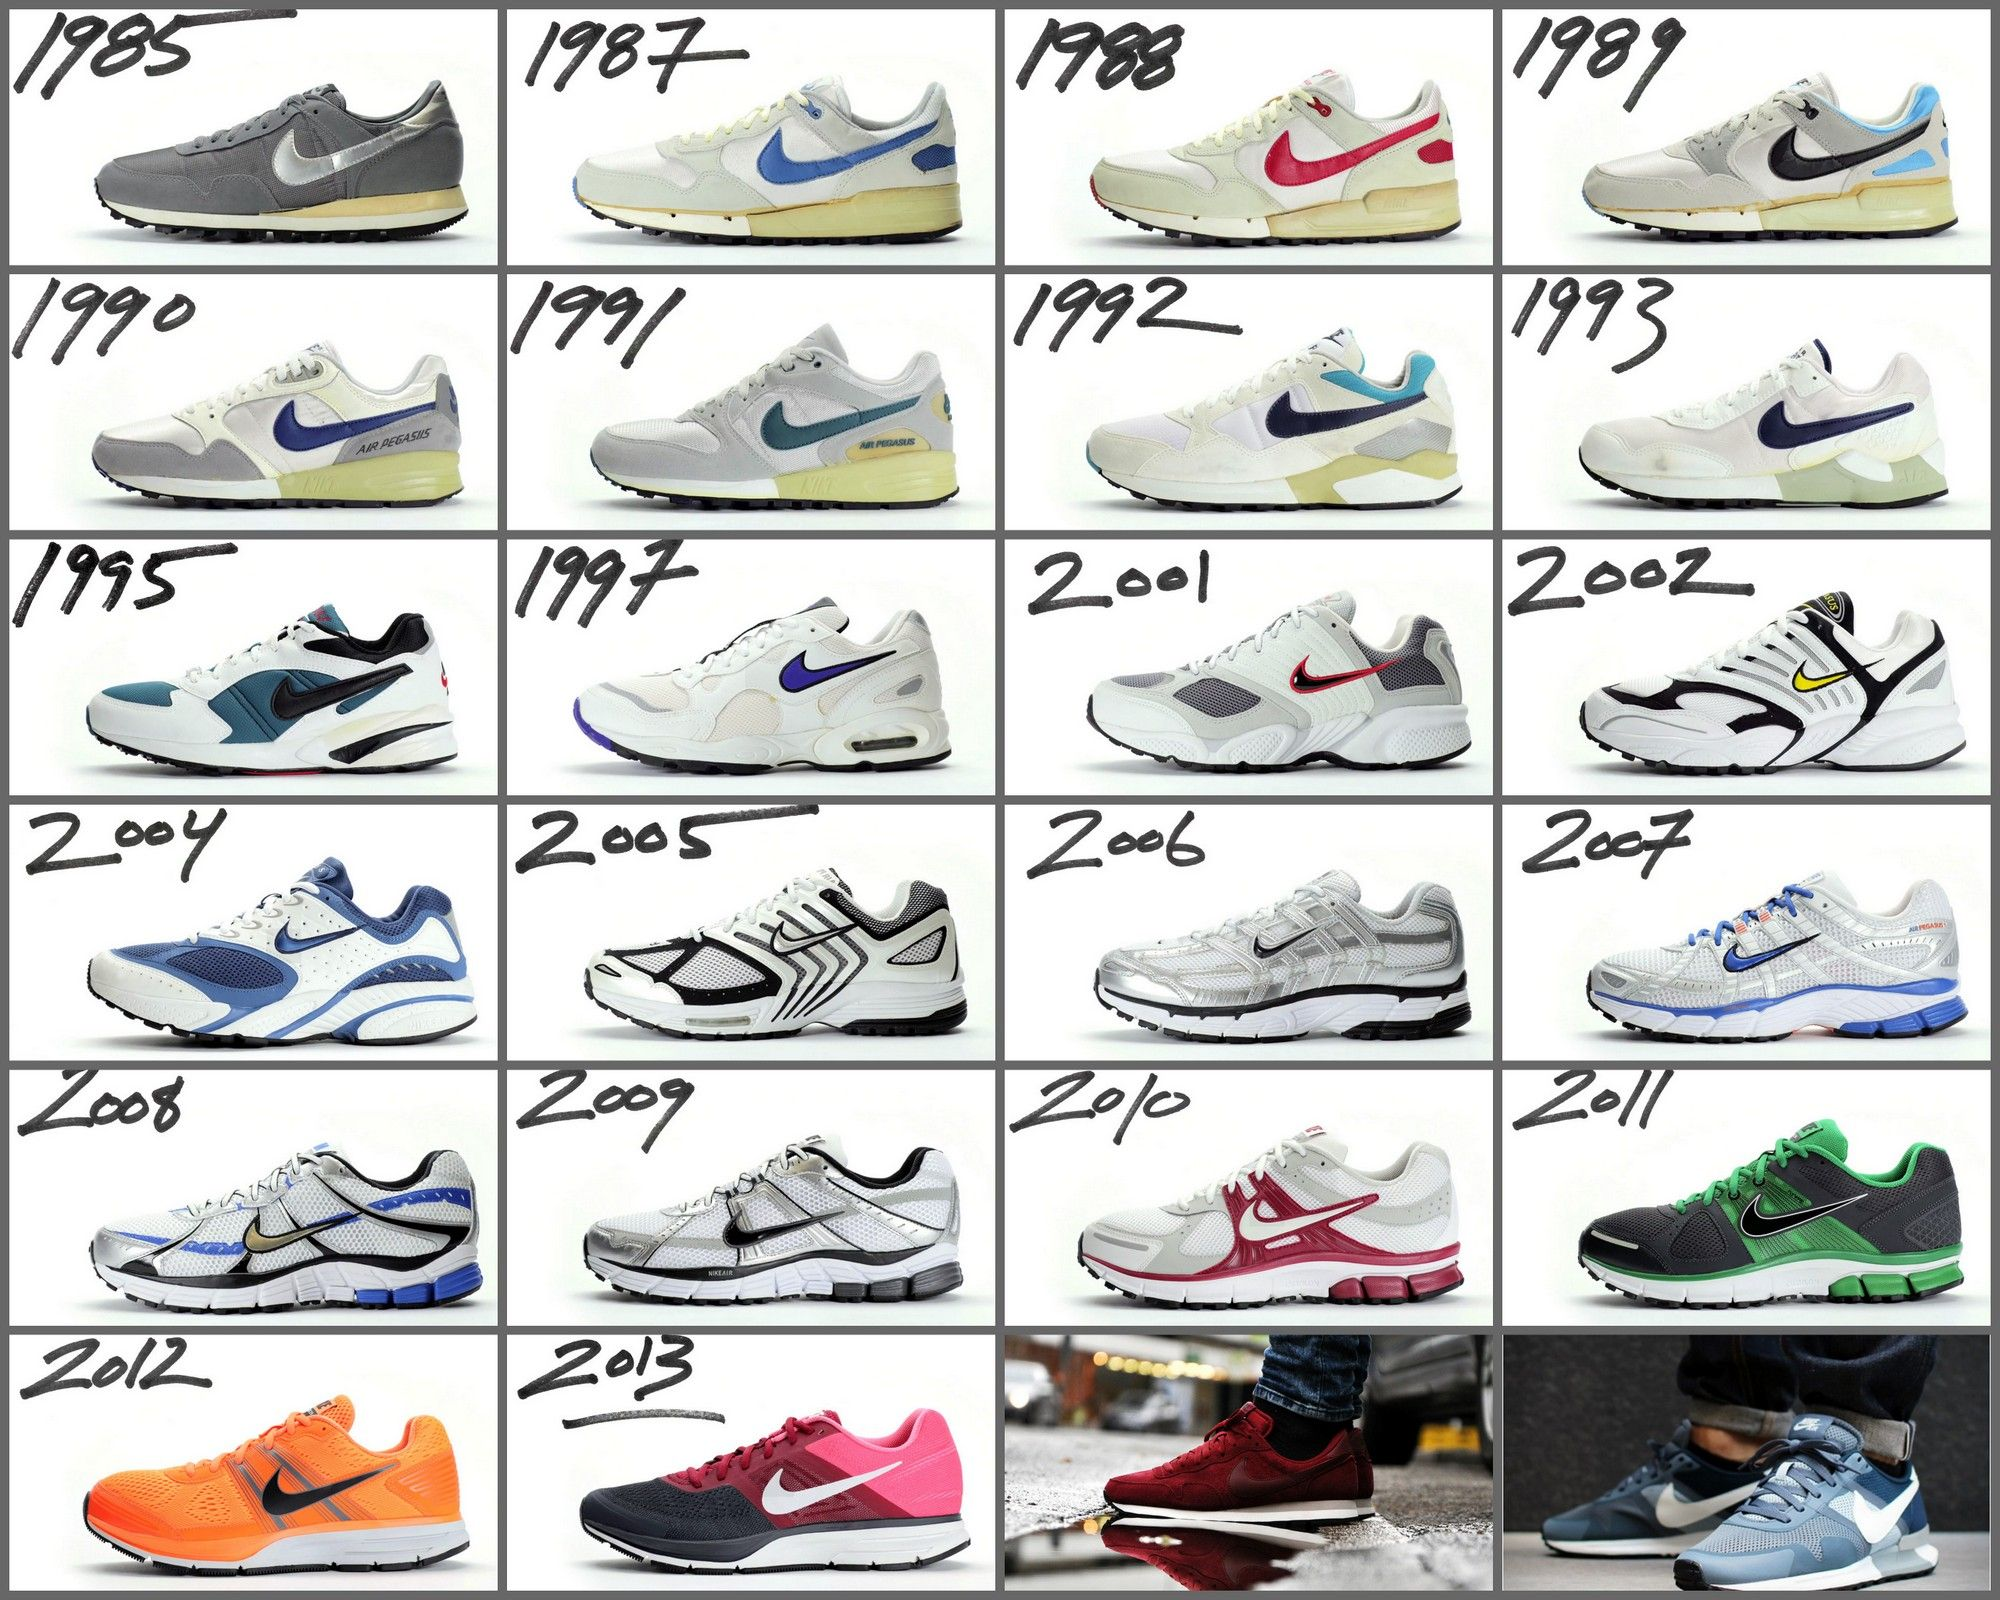 check out 73c15 ef8e0 221 best Sneakerhead images on Pinterest   Shoes, Nike free shoes and  Slippers